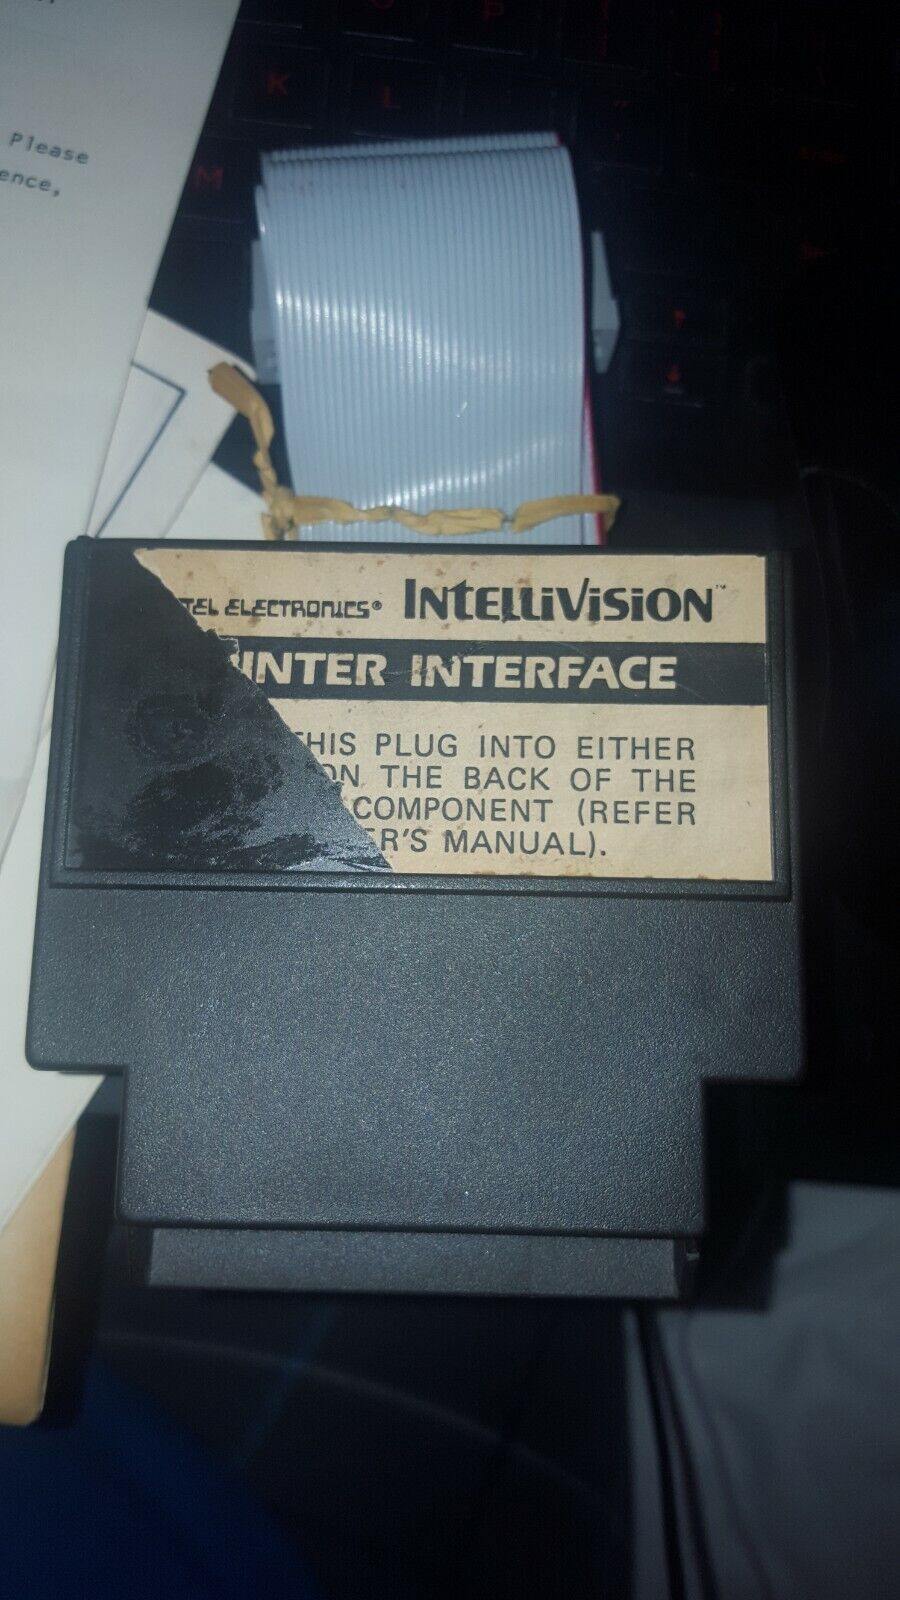 Image 1 - Intellivision printer interface and mic for keyboard component actually rare